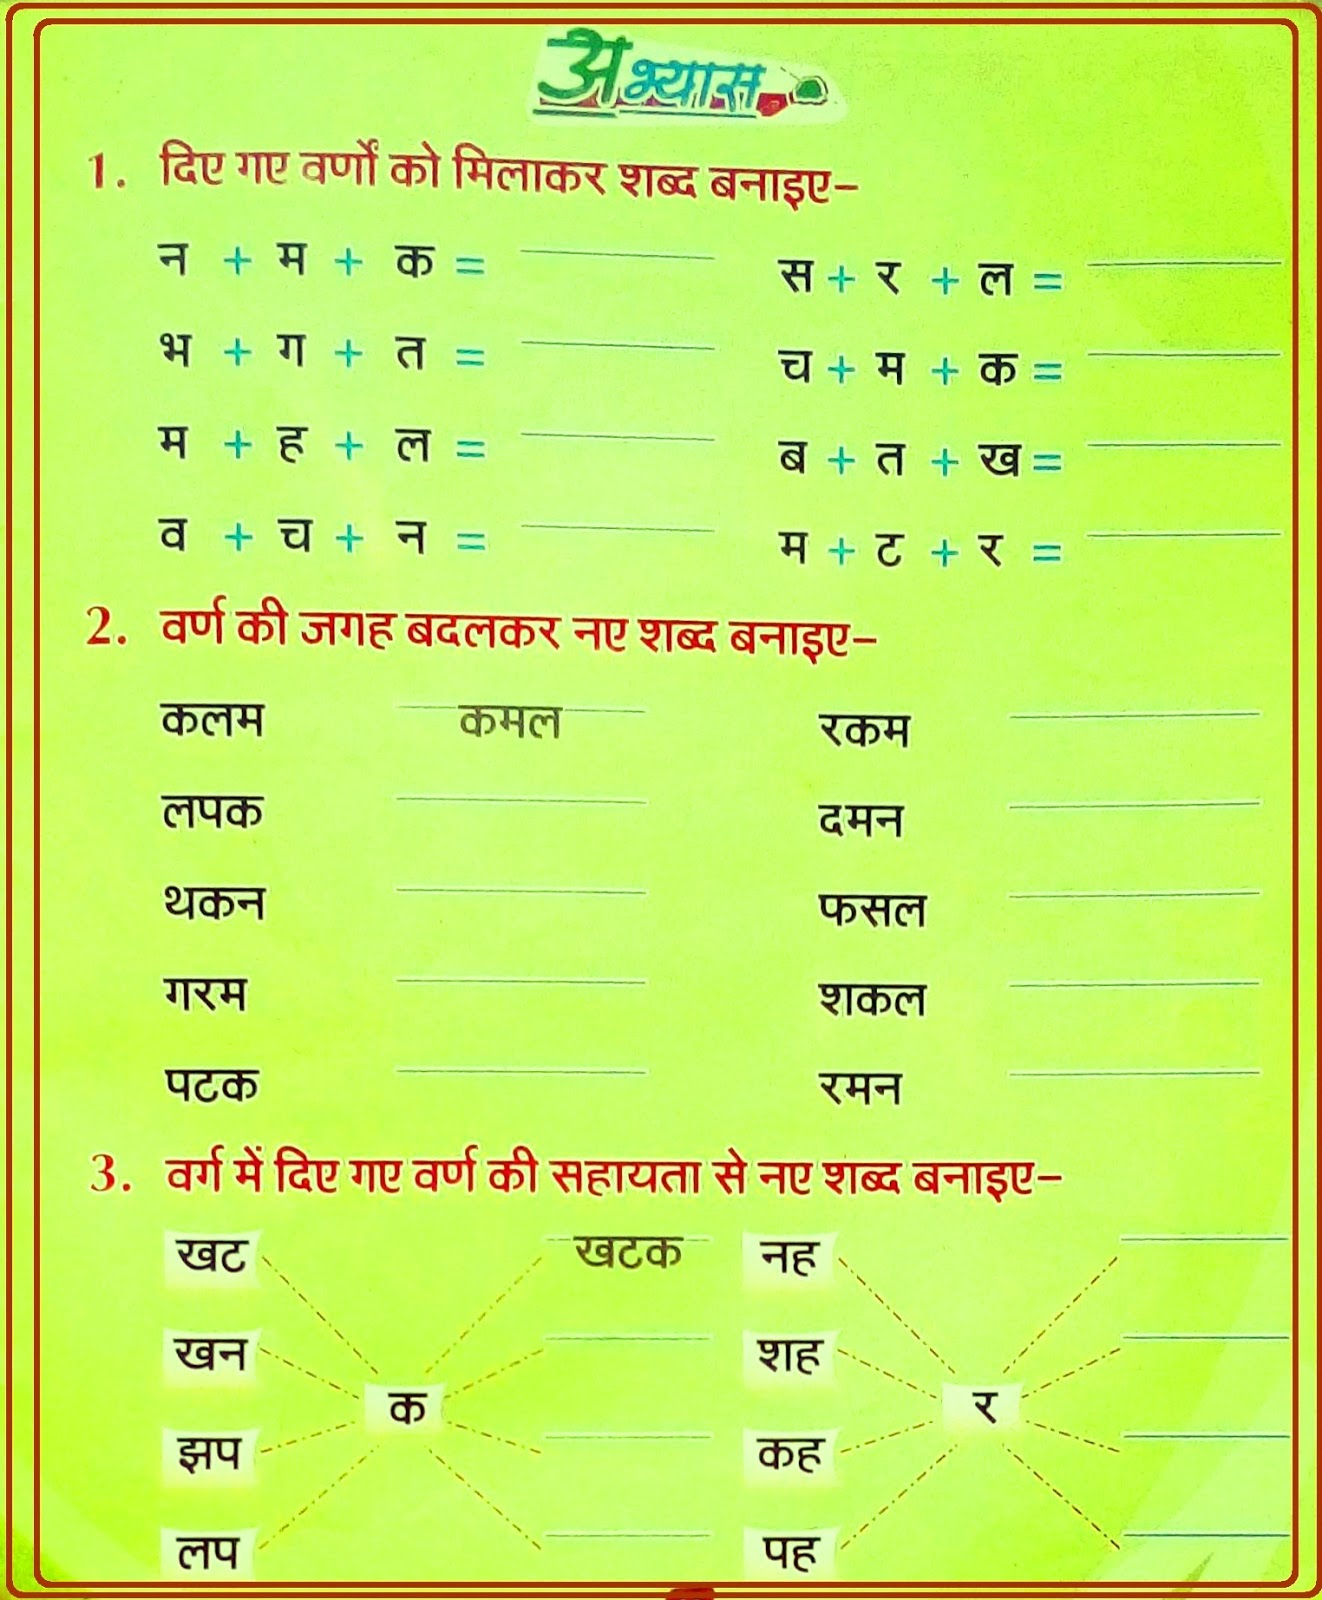 hight resolution of Primary 1 Hindi Worksheets   Printable Worksheets and Activities for  Teachers